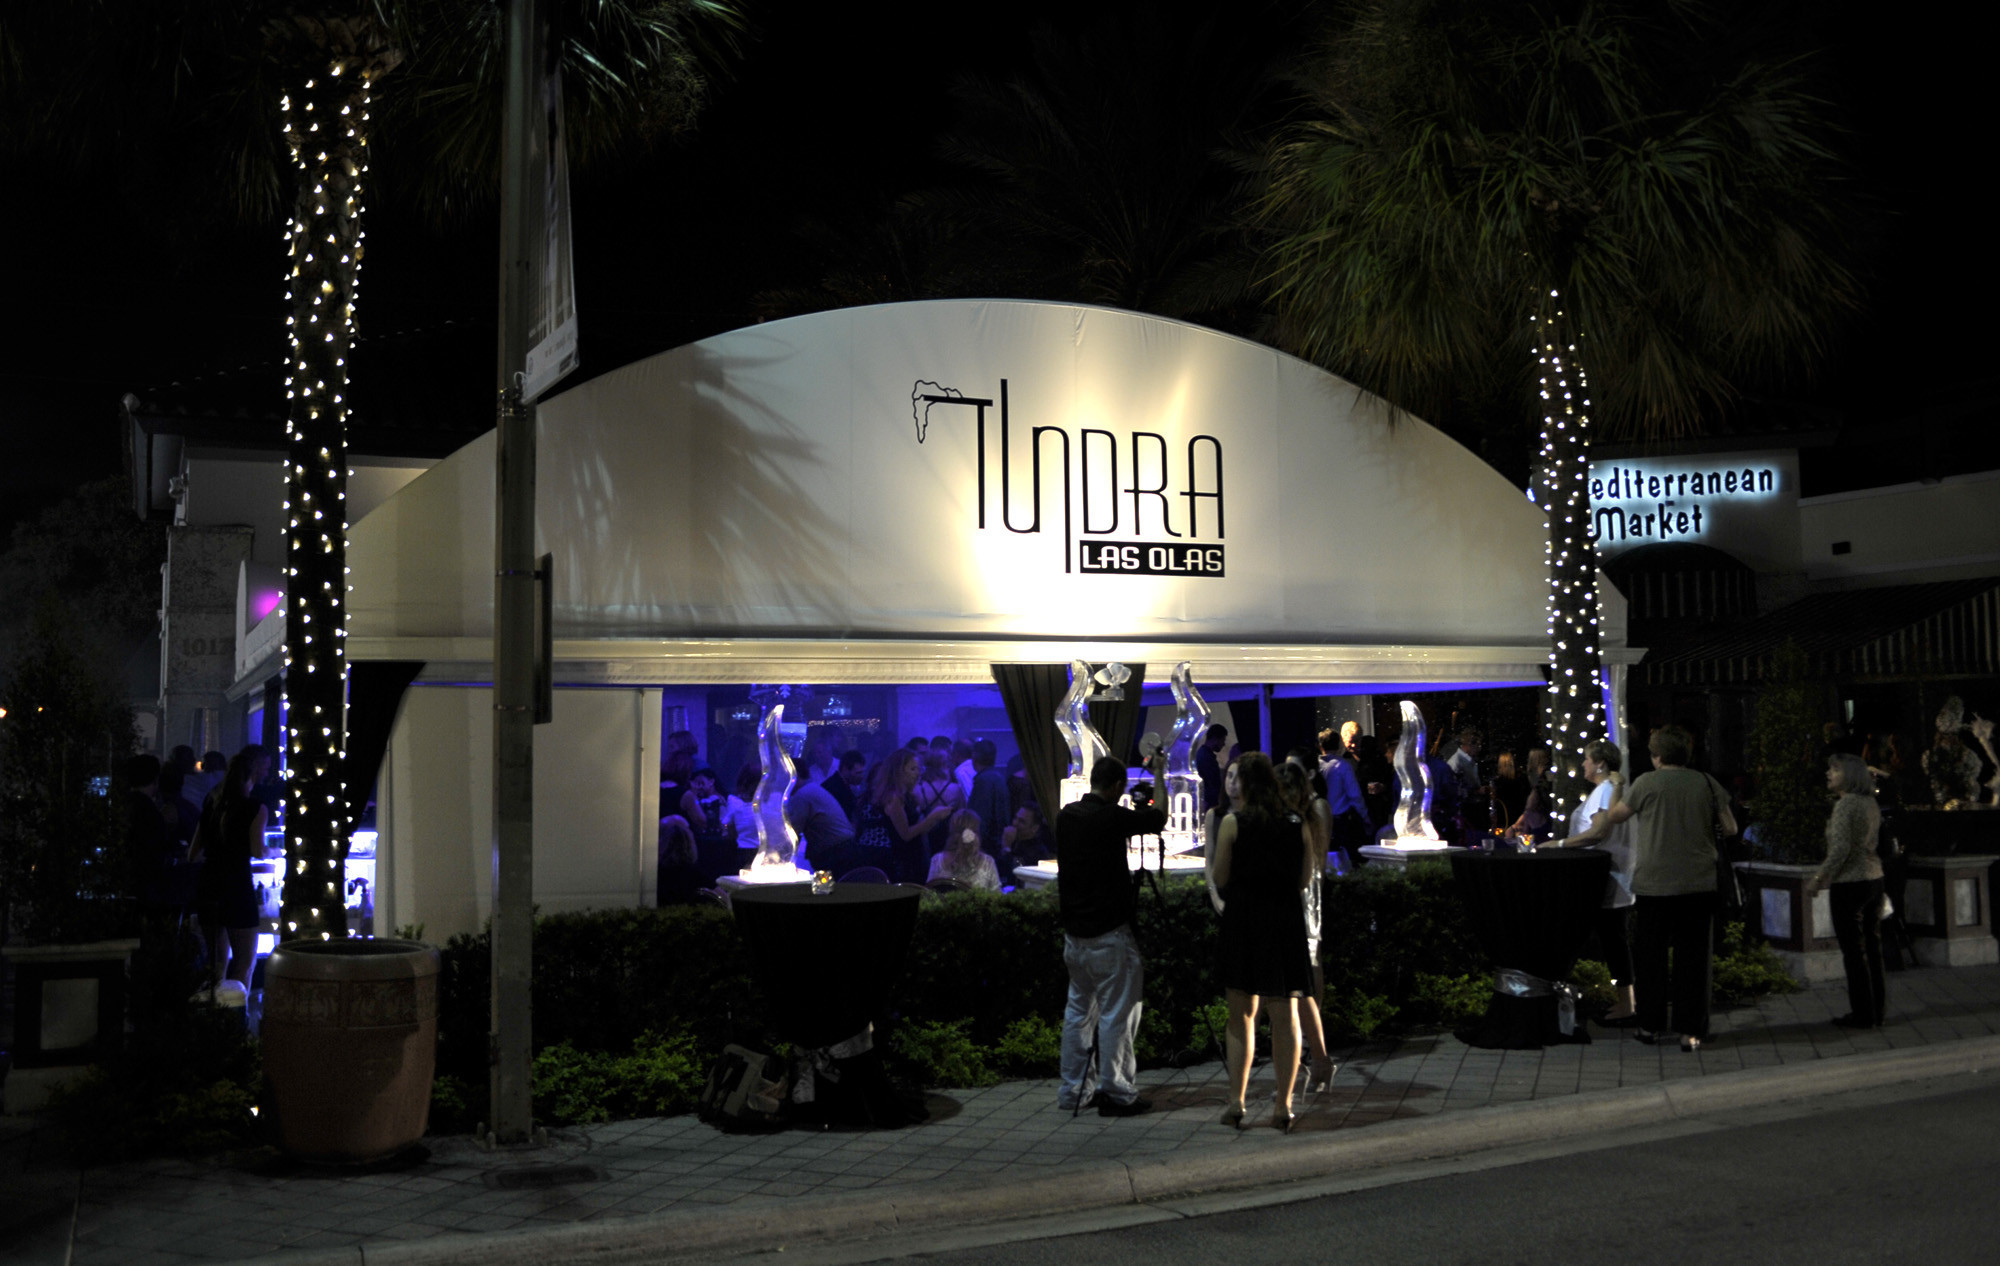 Tundra offers guests an unprecedented collection of chills and thrills, and features a menu of globally inspired fare served in a sophisticated atmosphere mimicking natural tundra.